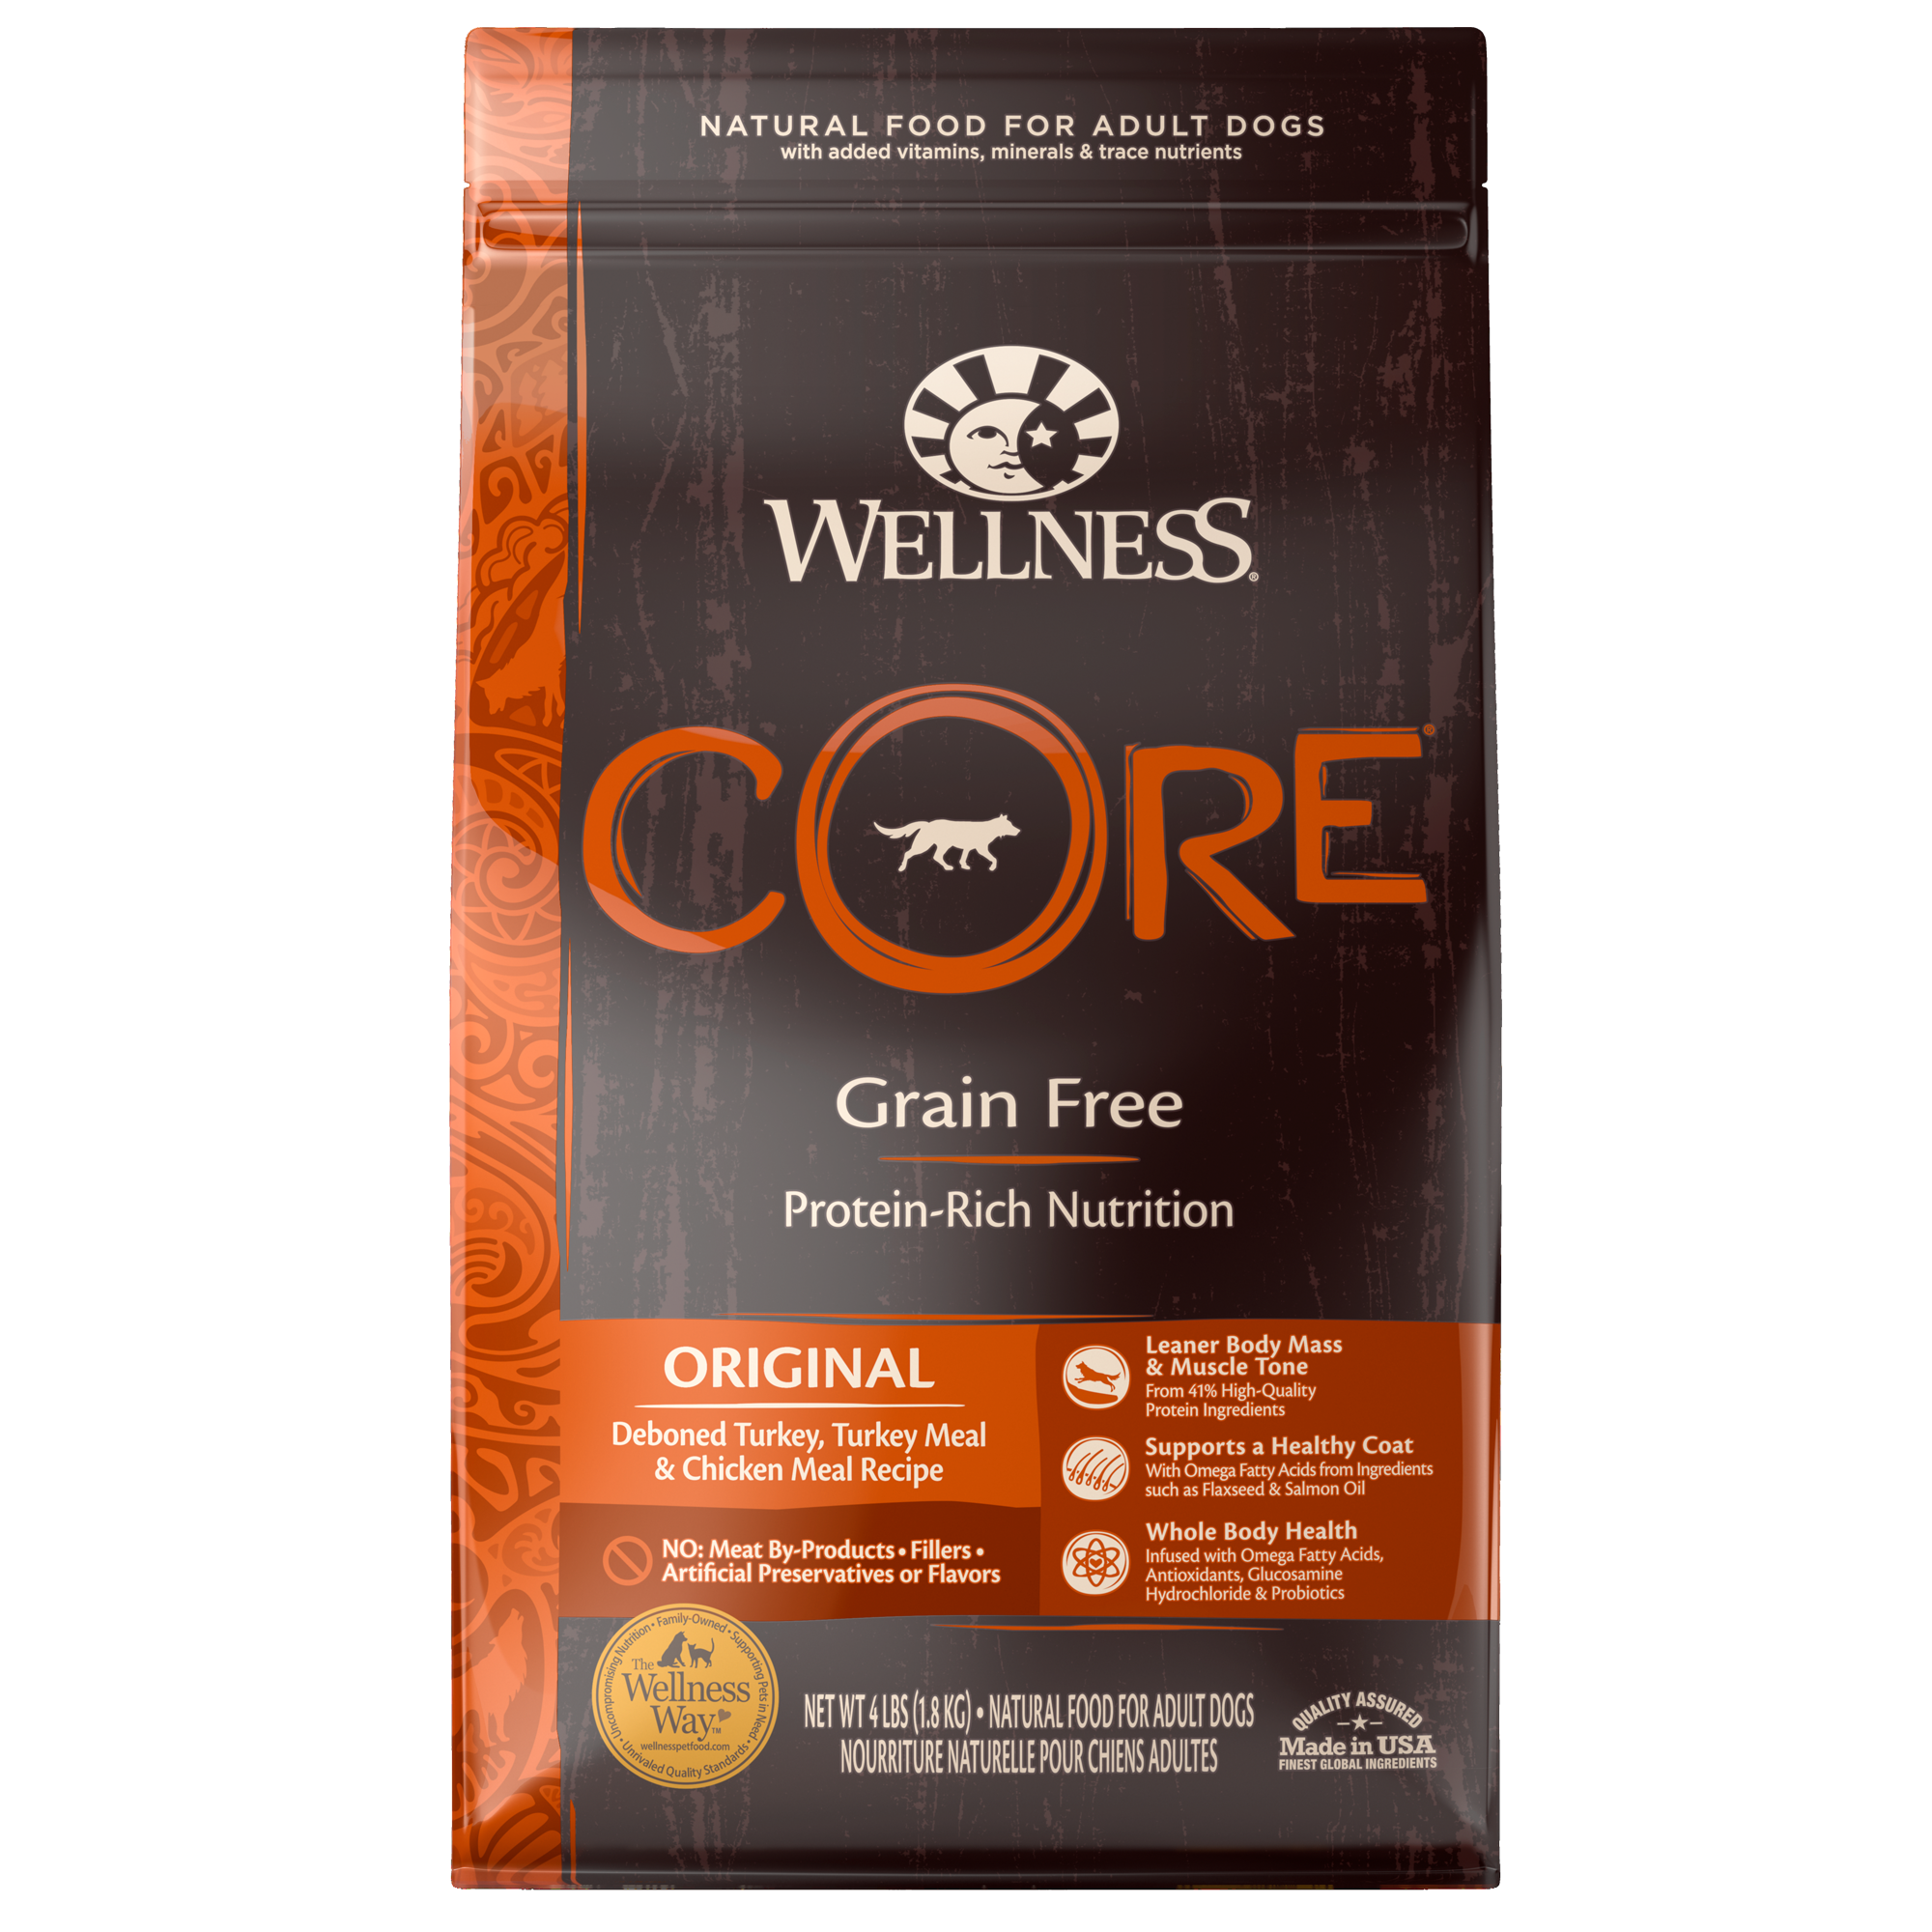 Core Original Wellness Pet Food